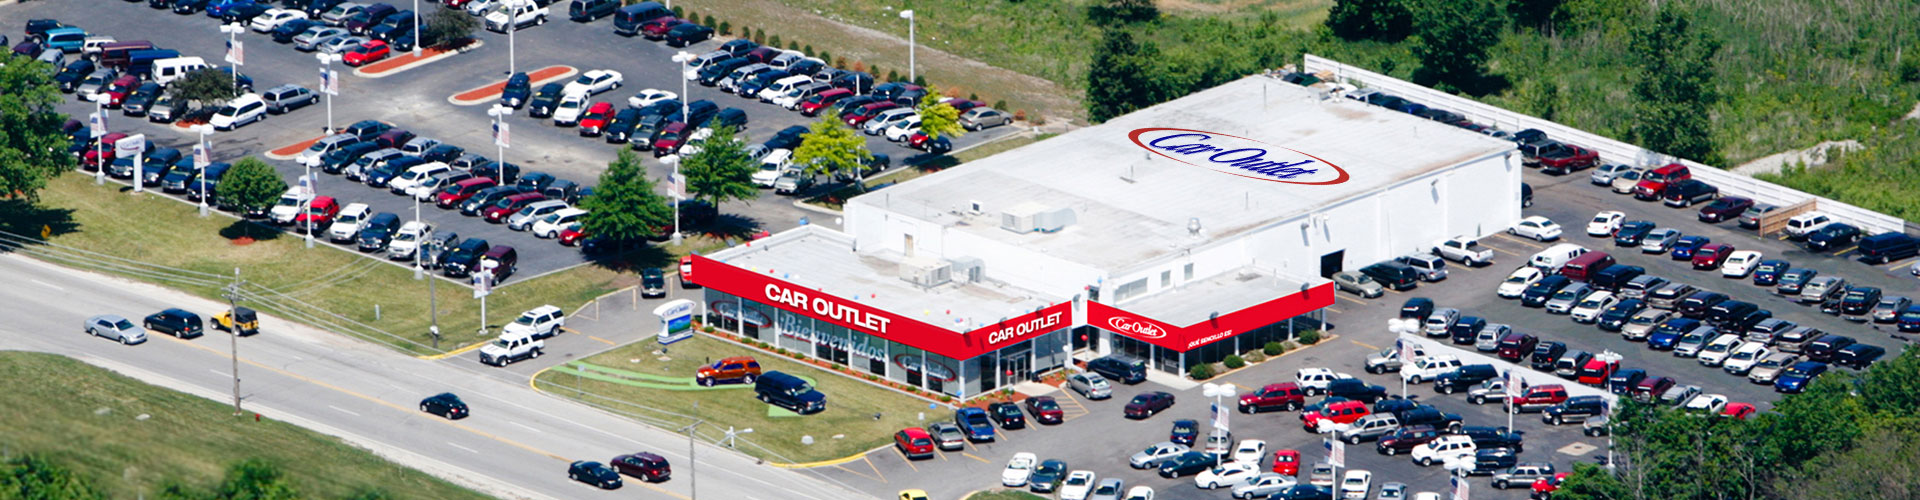 car outlet elgin  Used Car Dealership in Aurora  Cheap Cars for Sale in Aurora